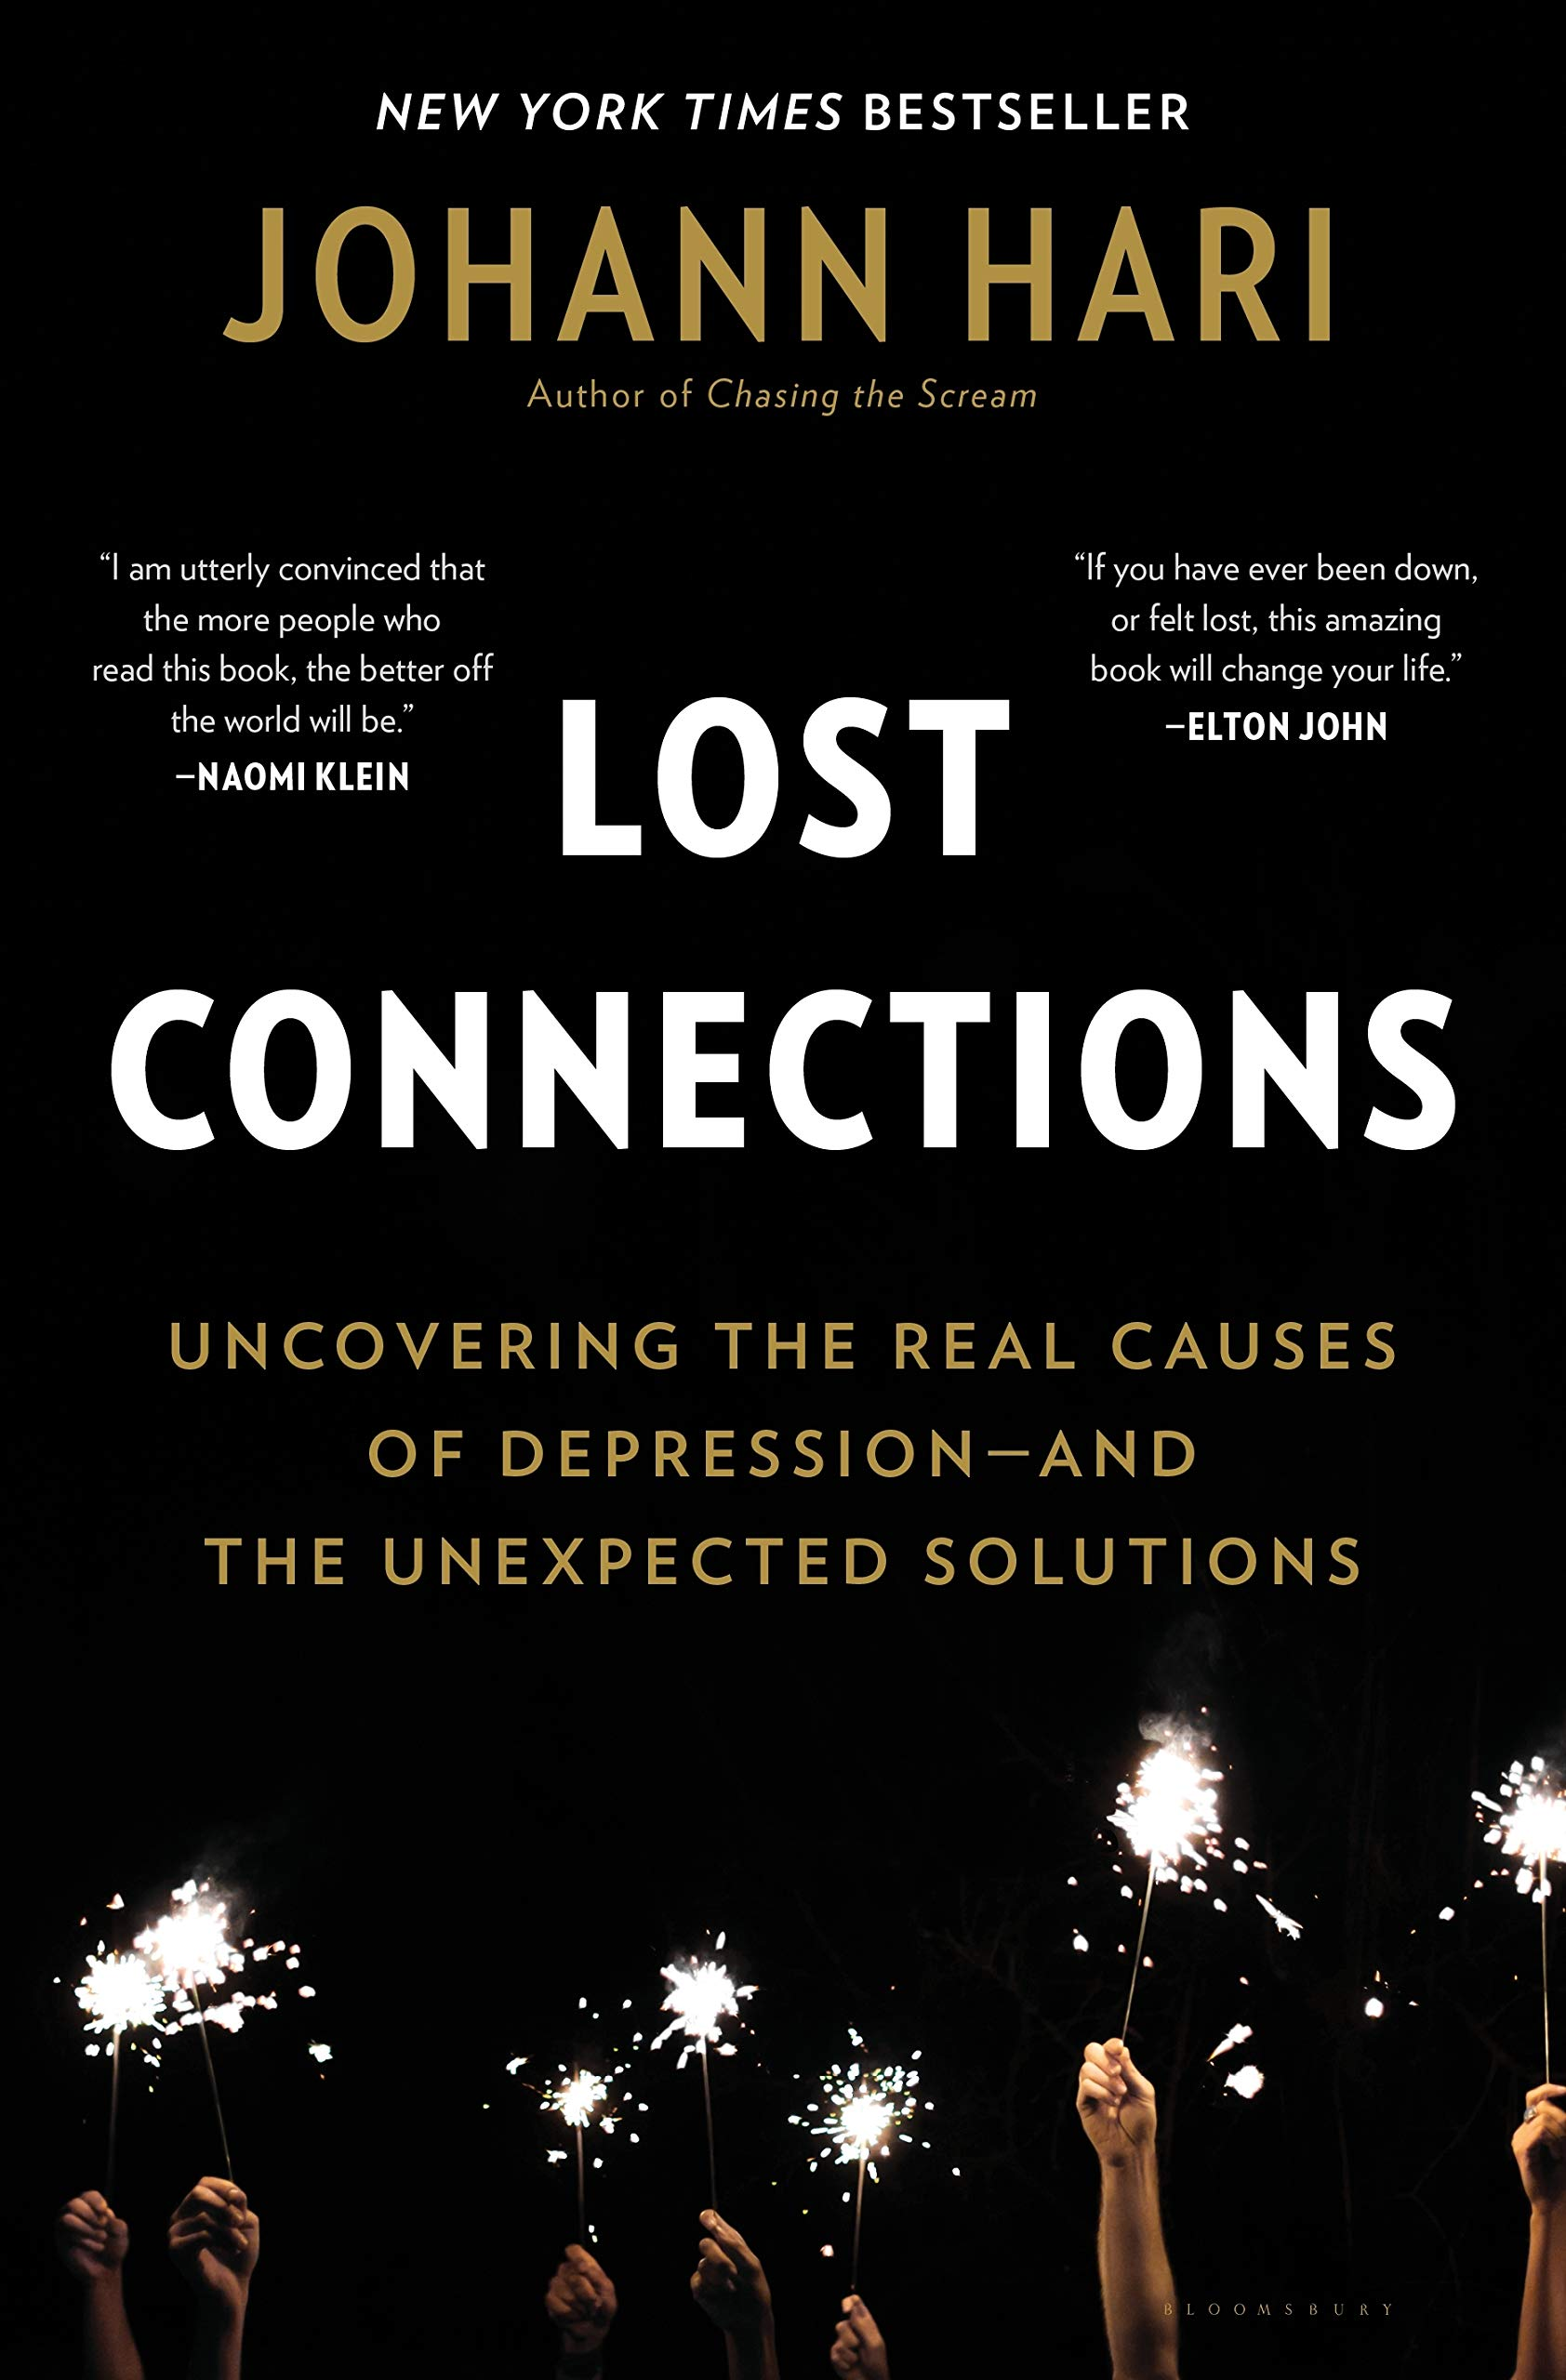 Lost Connections: Why You're Depressed and How to Find Hope by Bloomsbury USA